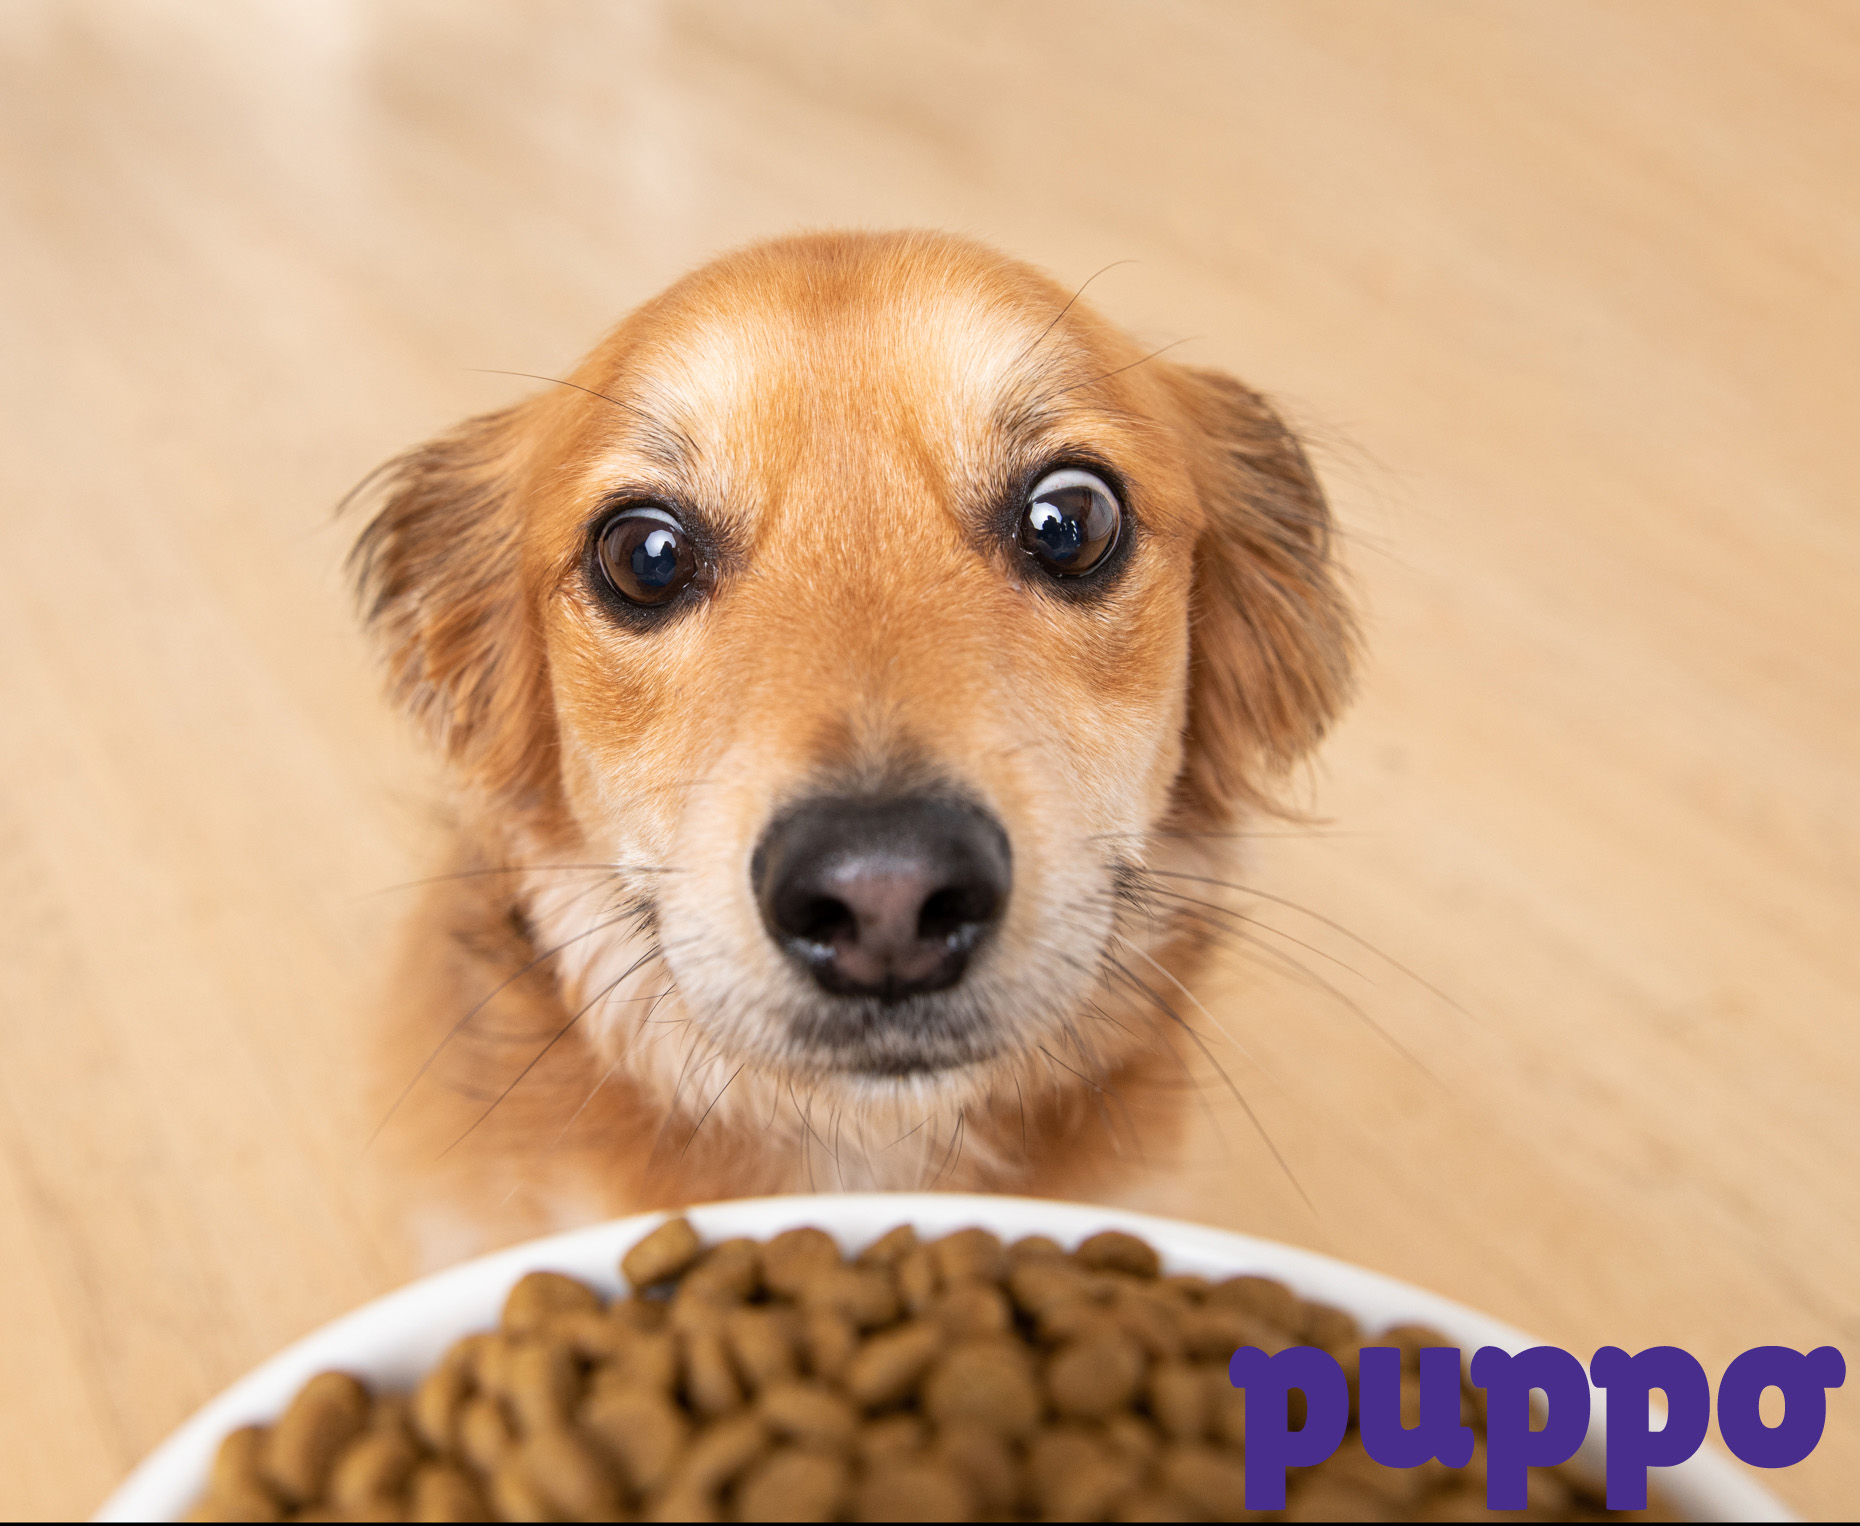 Dog  Advertising Photography | Basset Hound  and Food Bowl by Mark Rogers